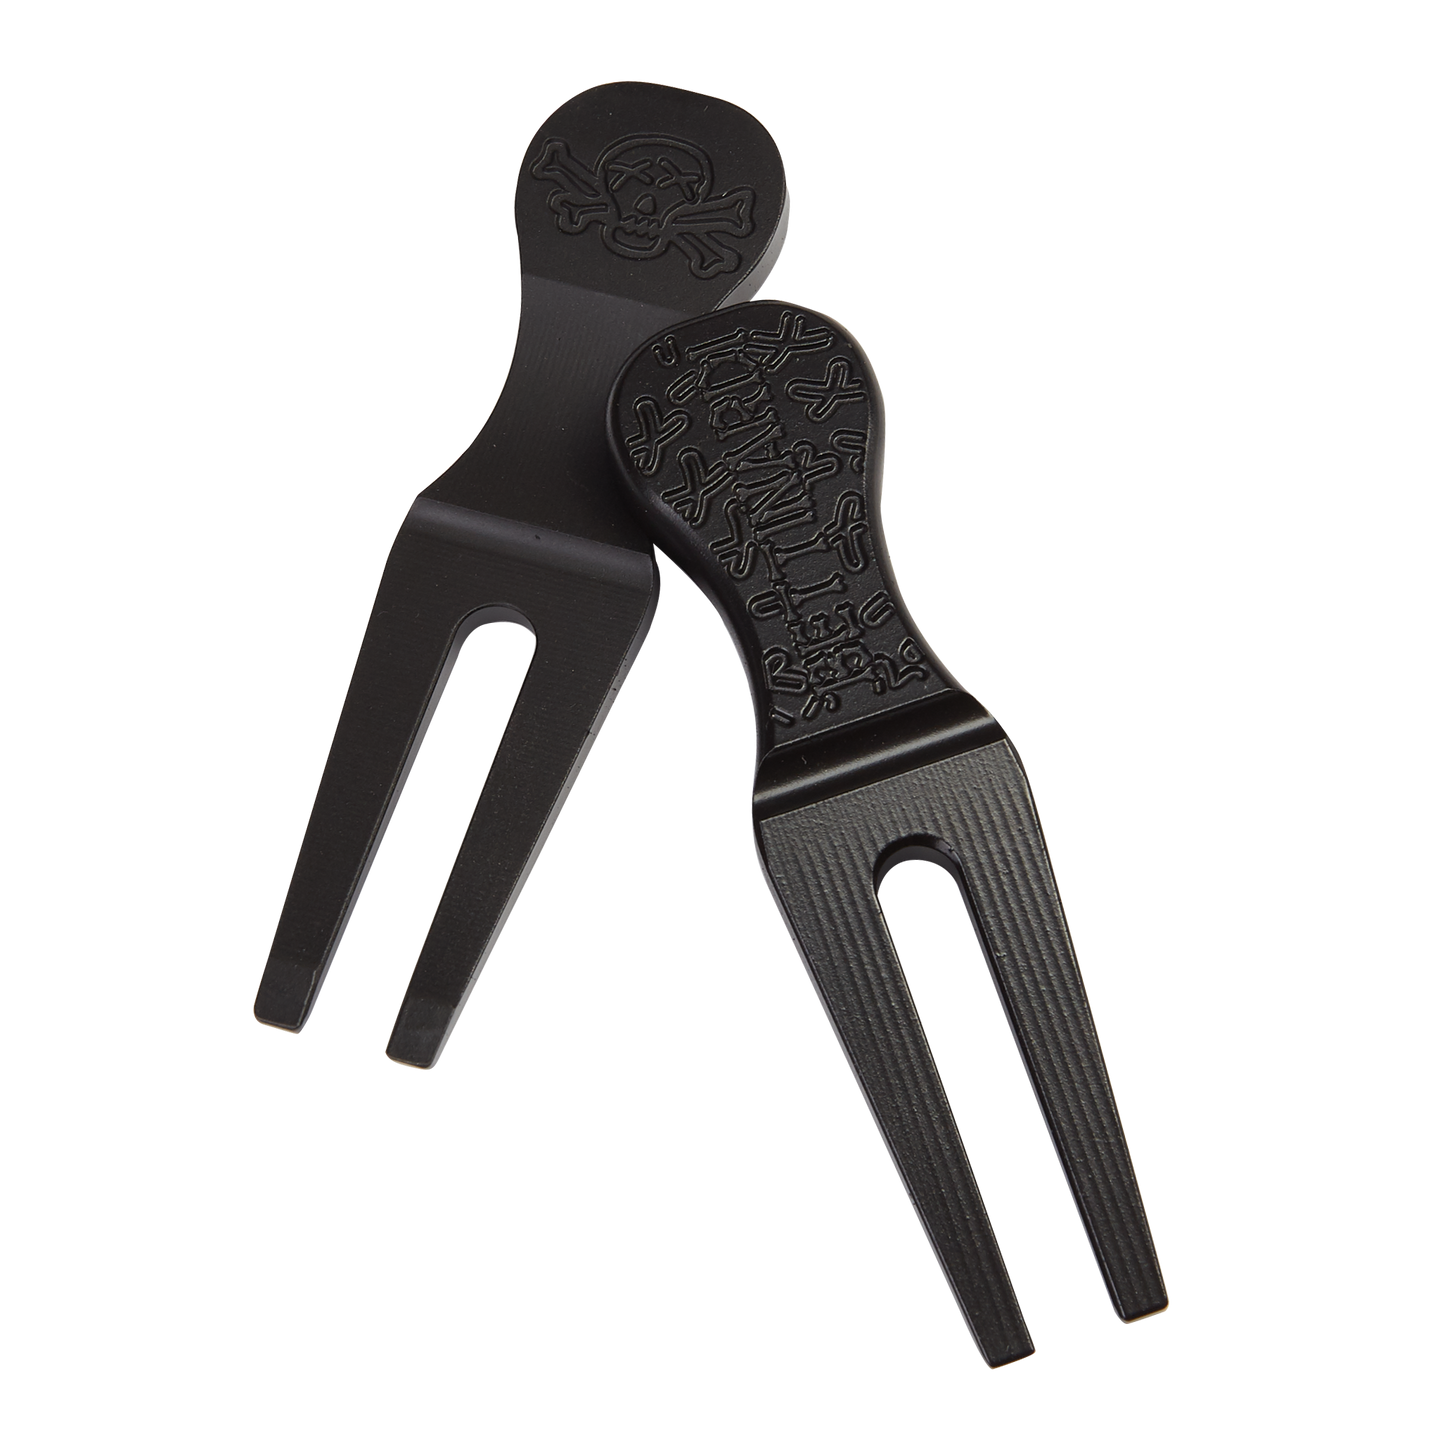 Poison Blackout Divot Tool